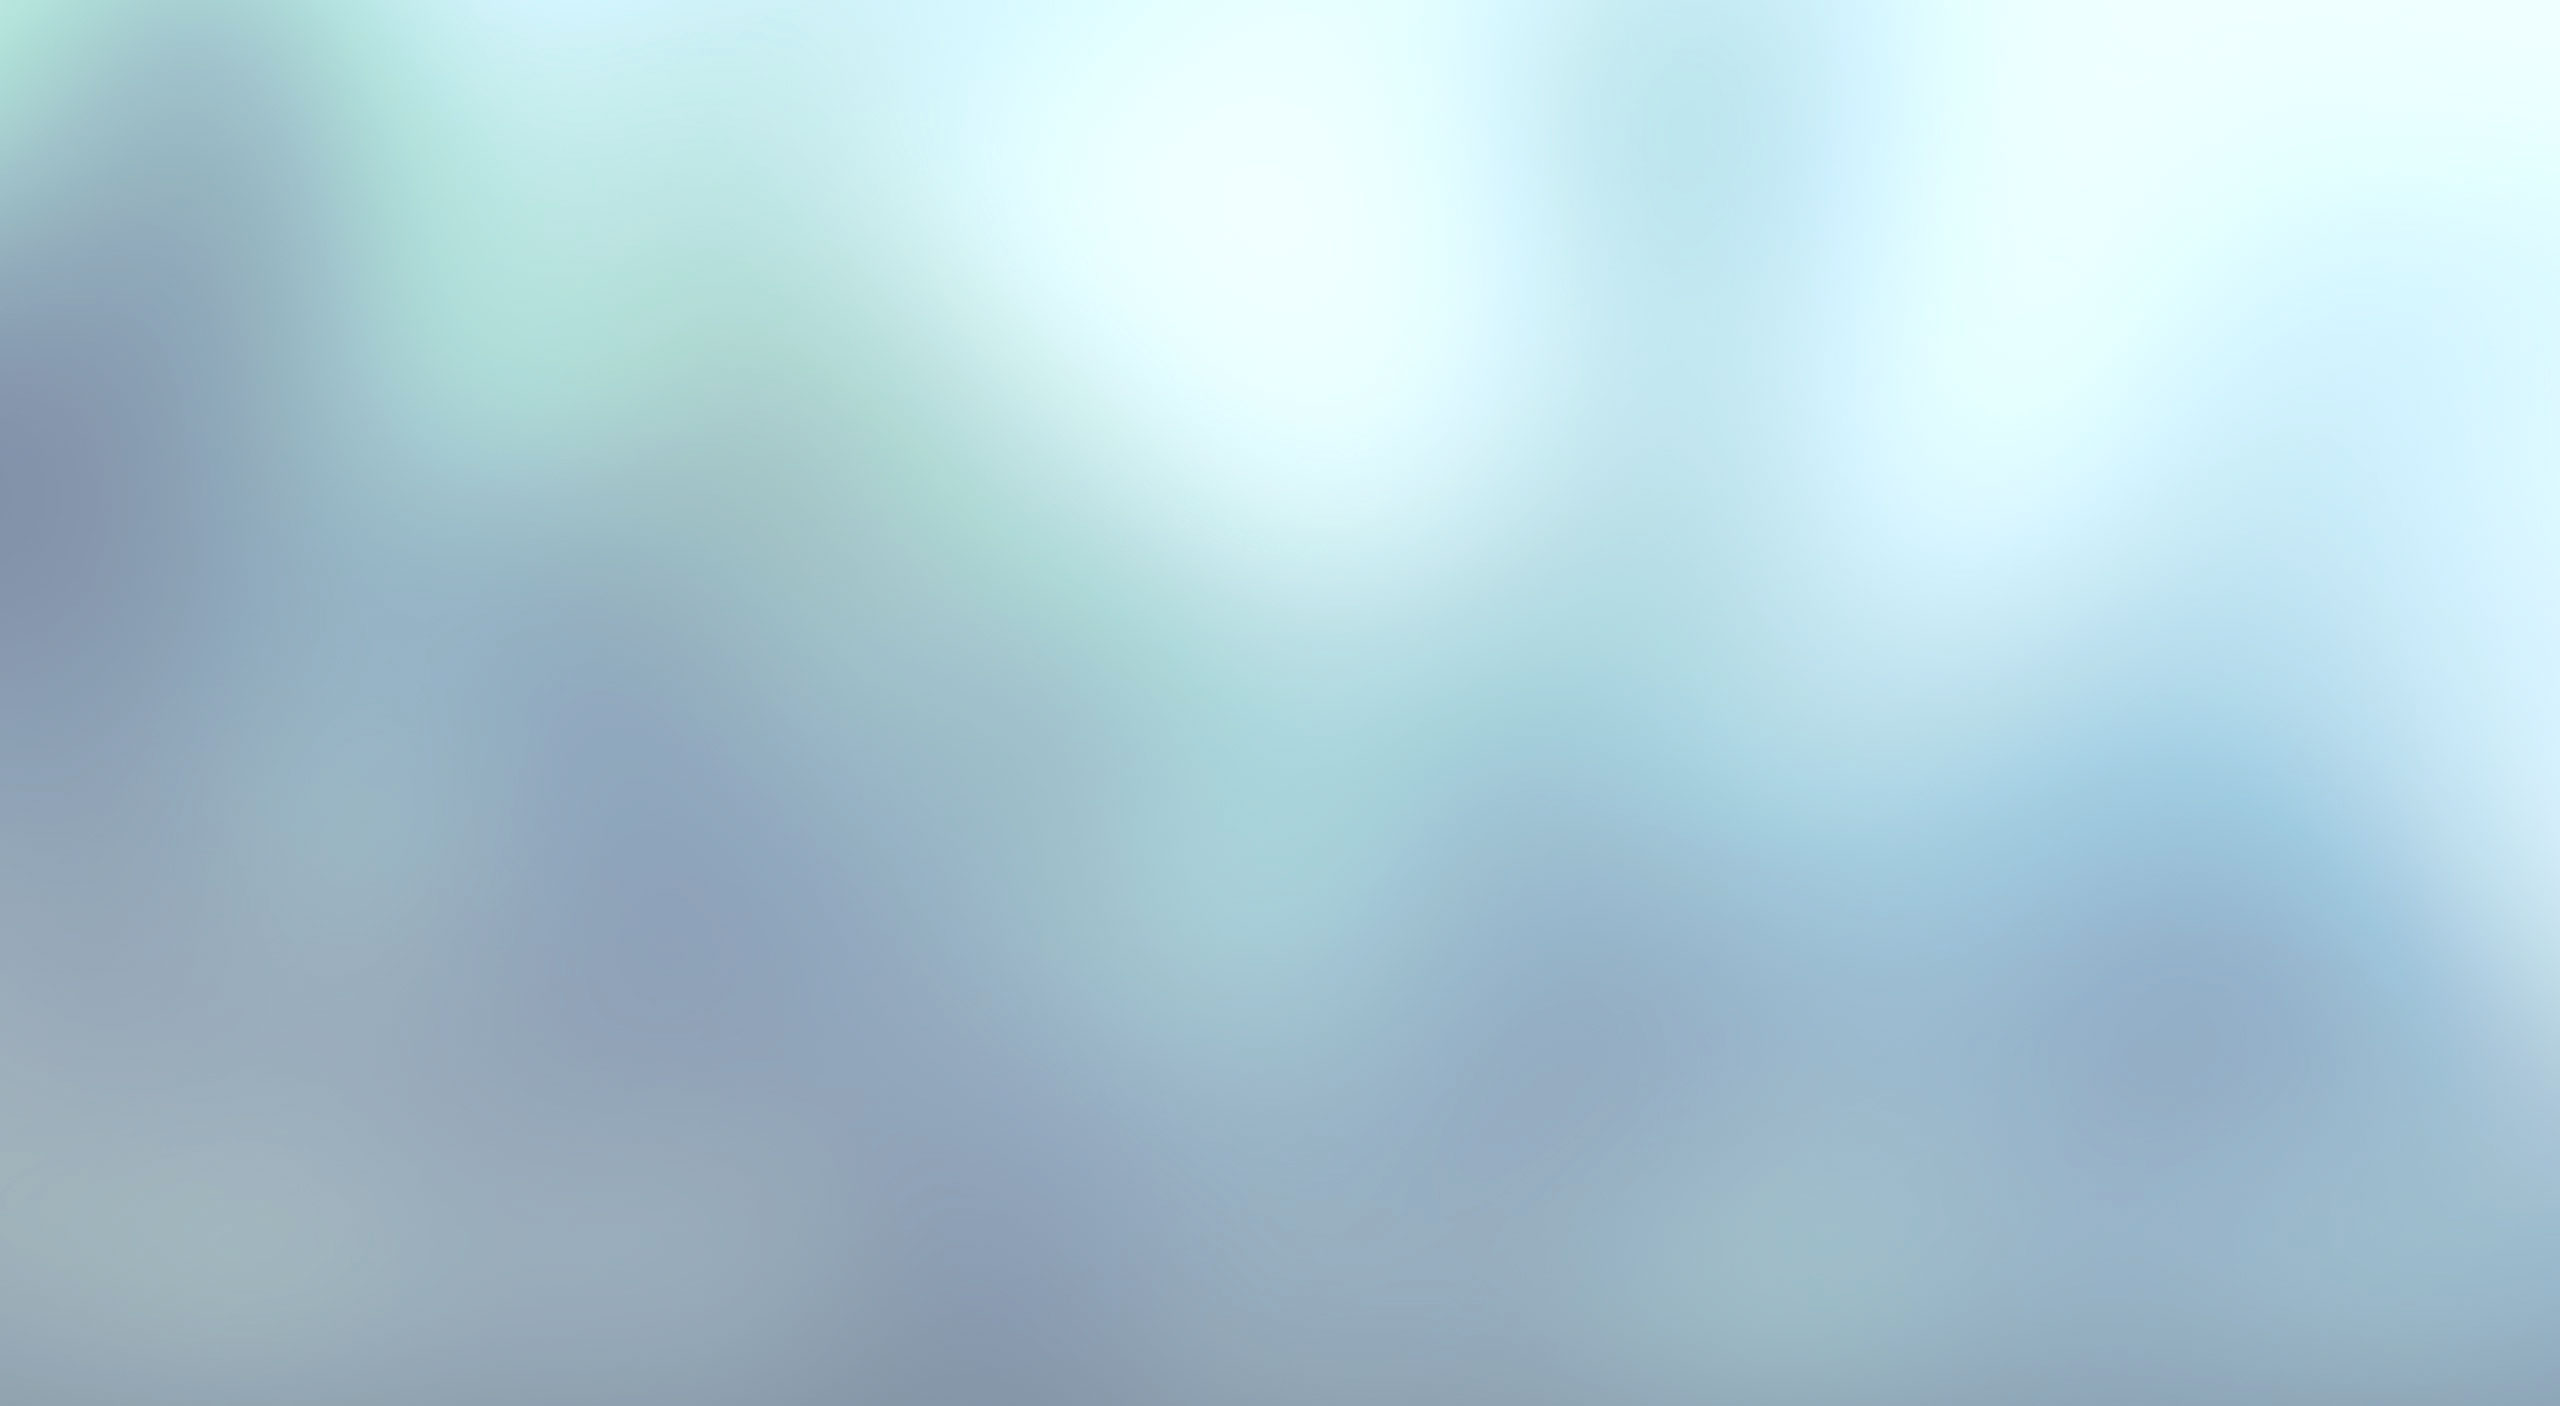 Blurred-Background1